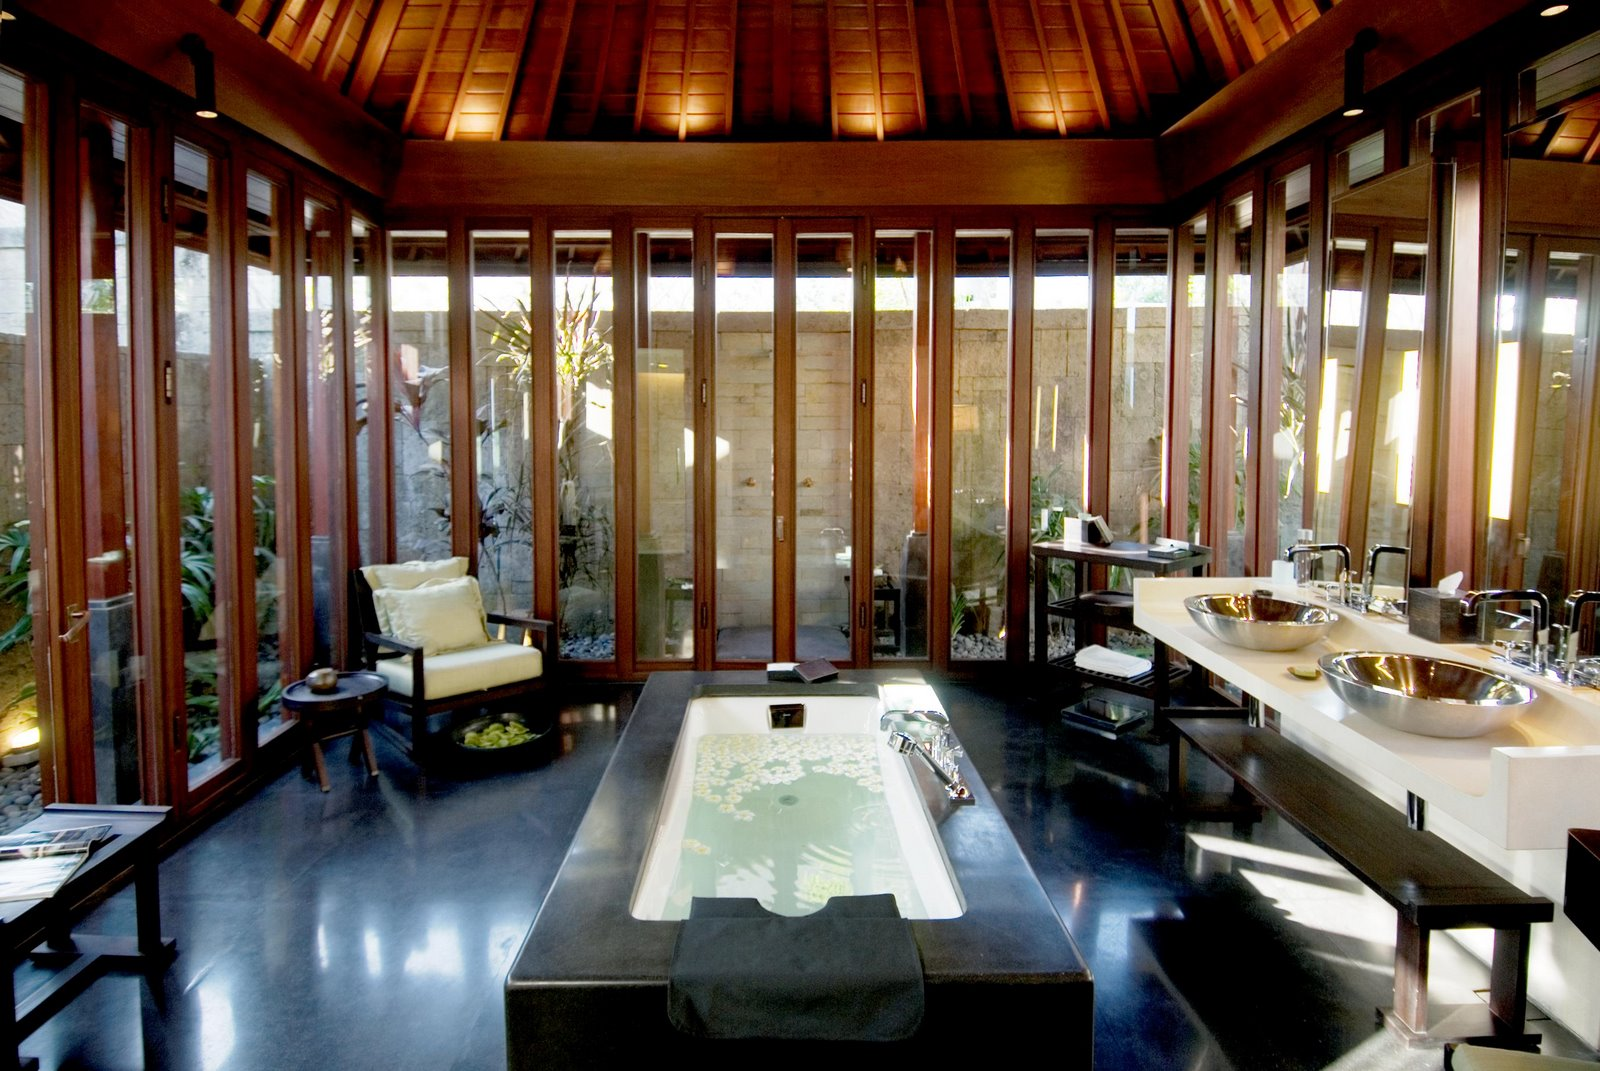 Bali indonesian bathroom design minimalist home design for Bali home inspirational design ideas